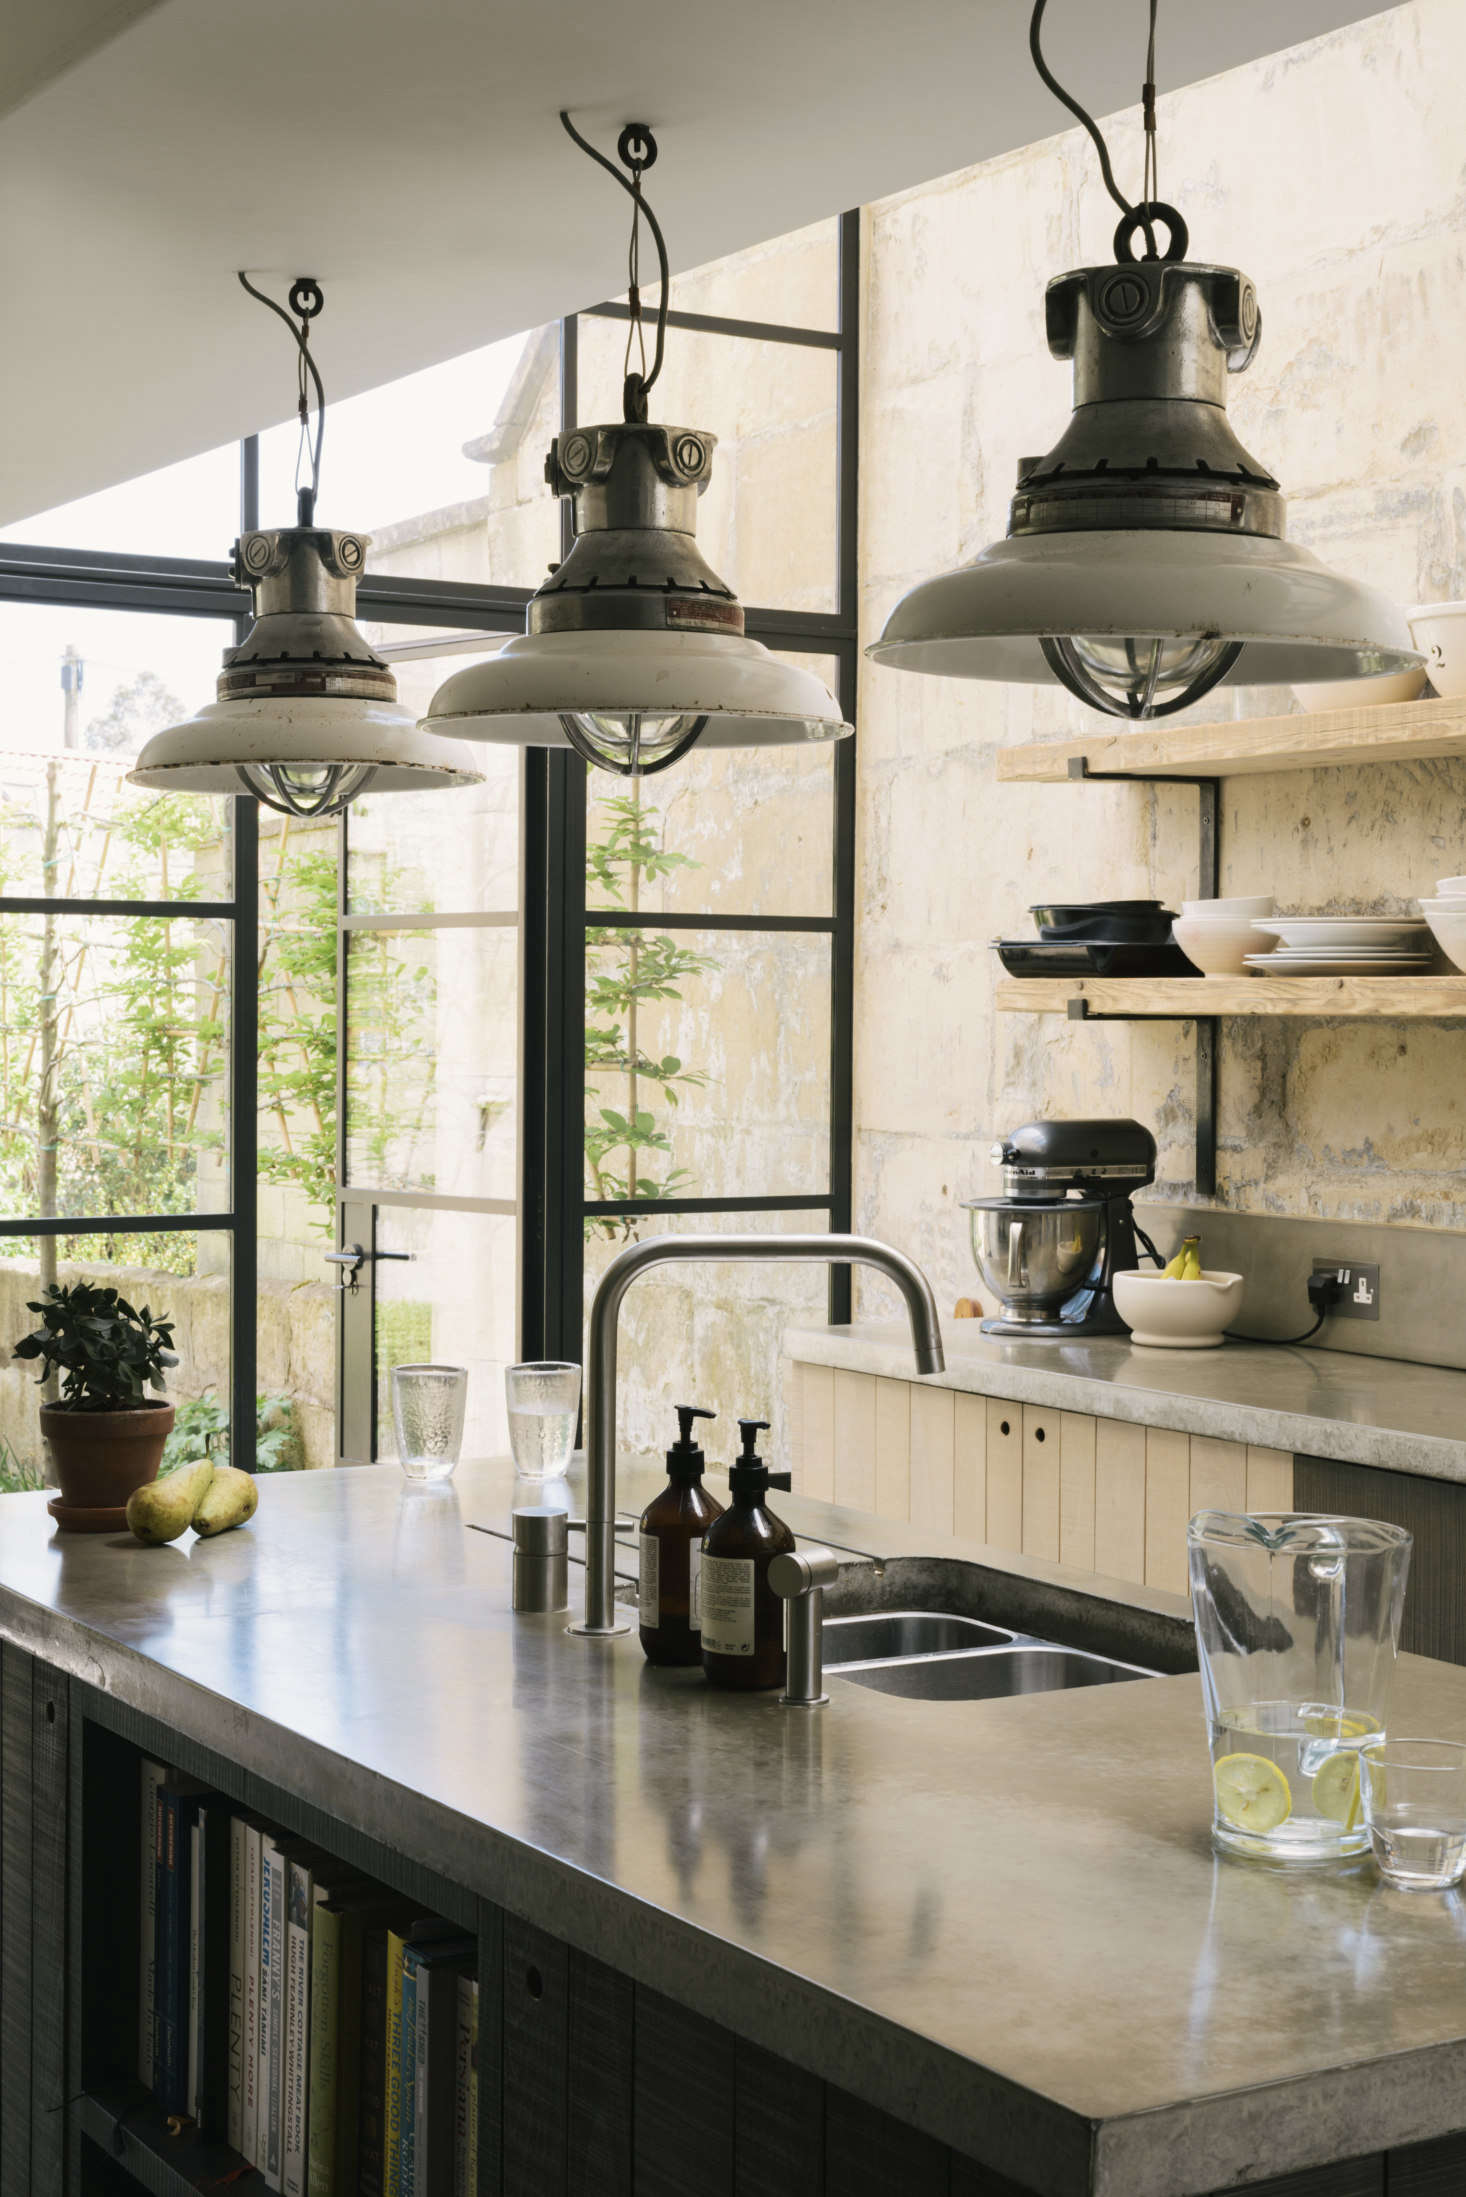 The brushed-stainless-steel undermountdouble-bowl sink and theF